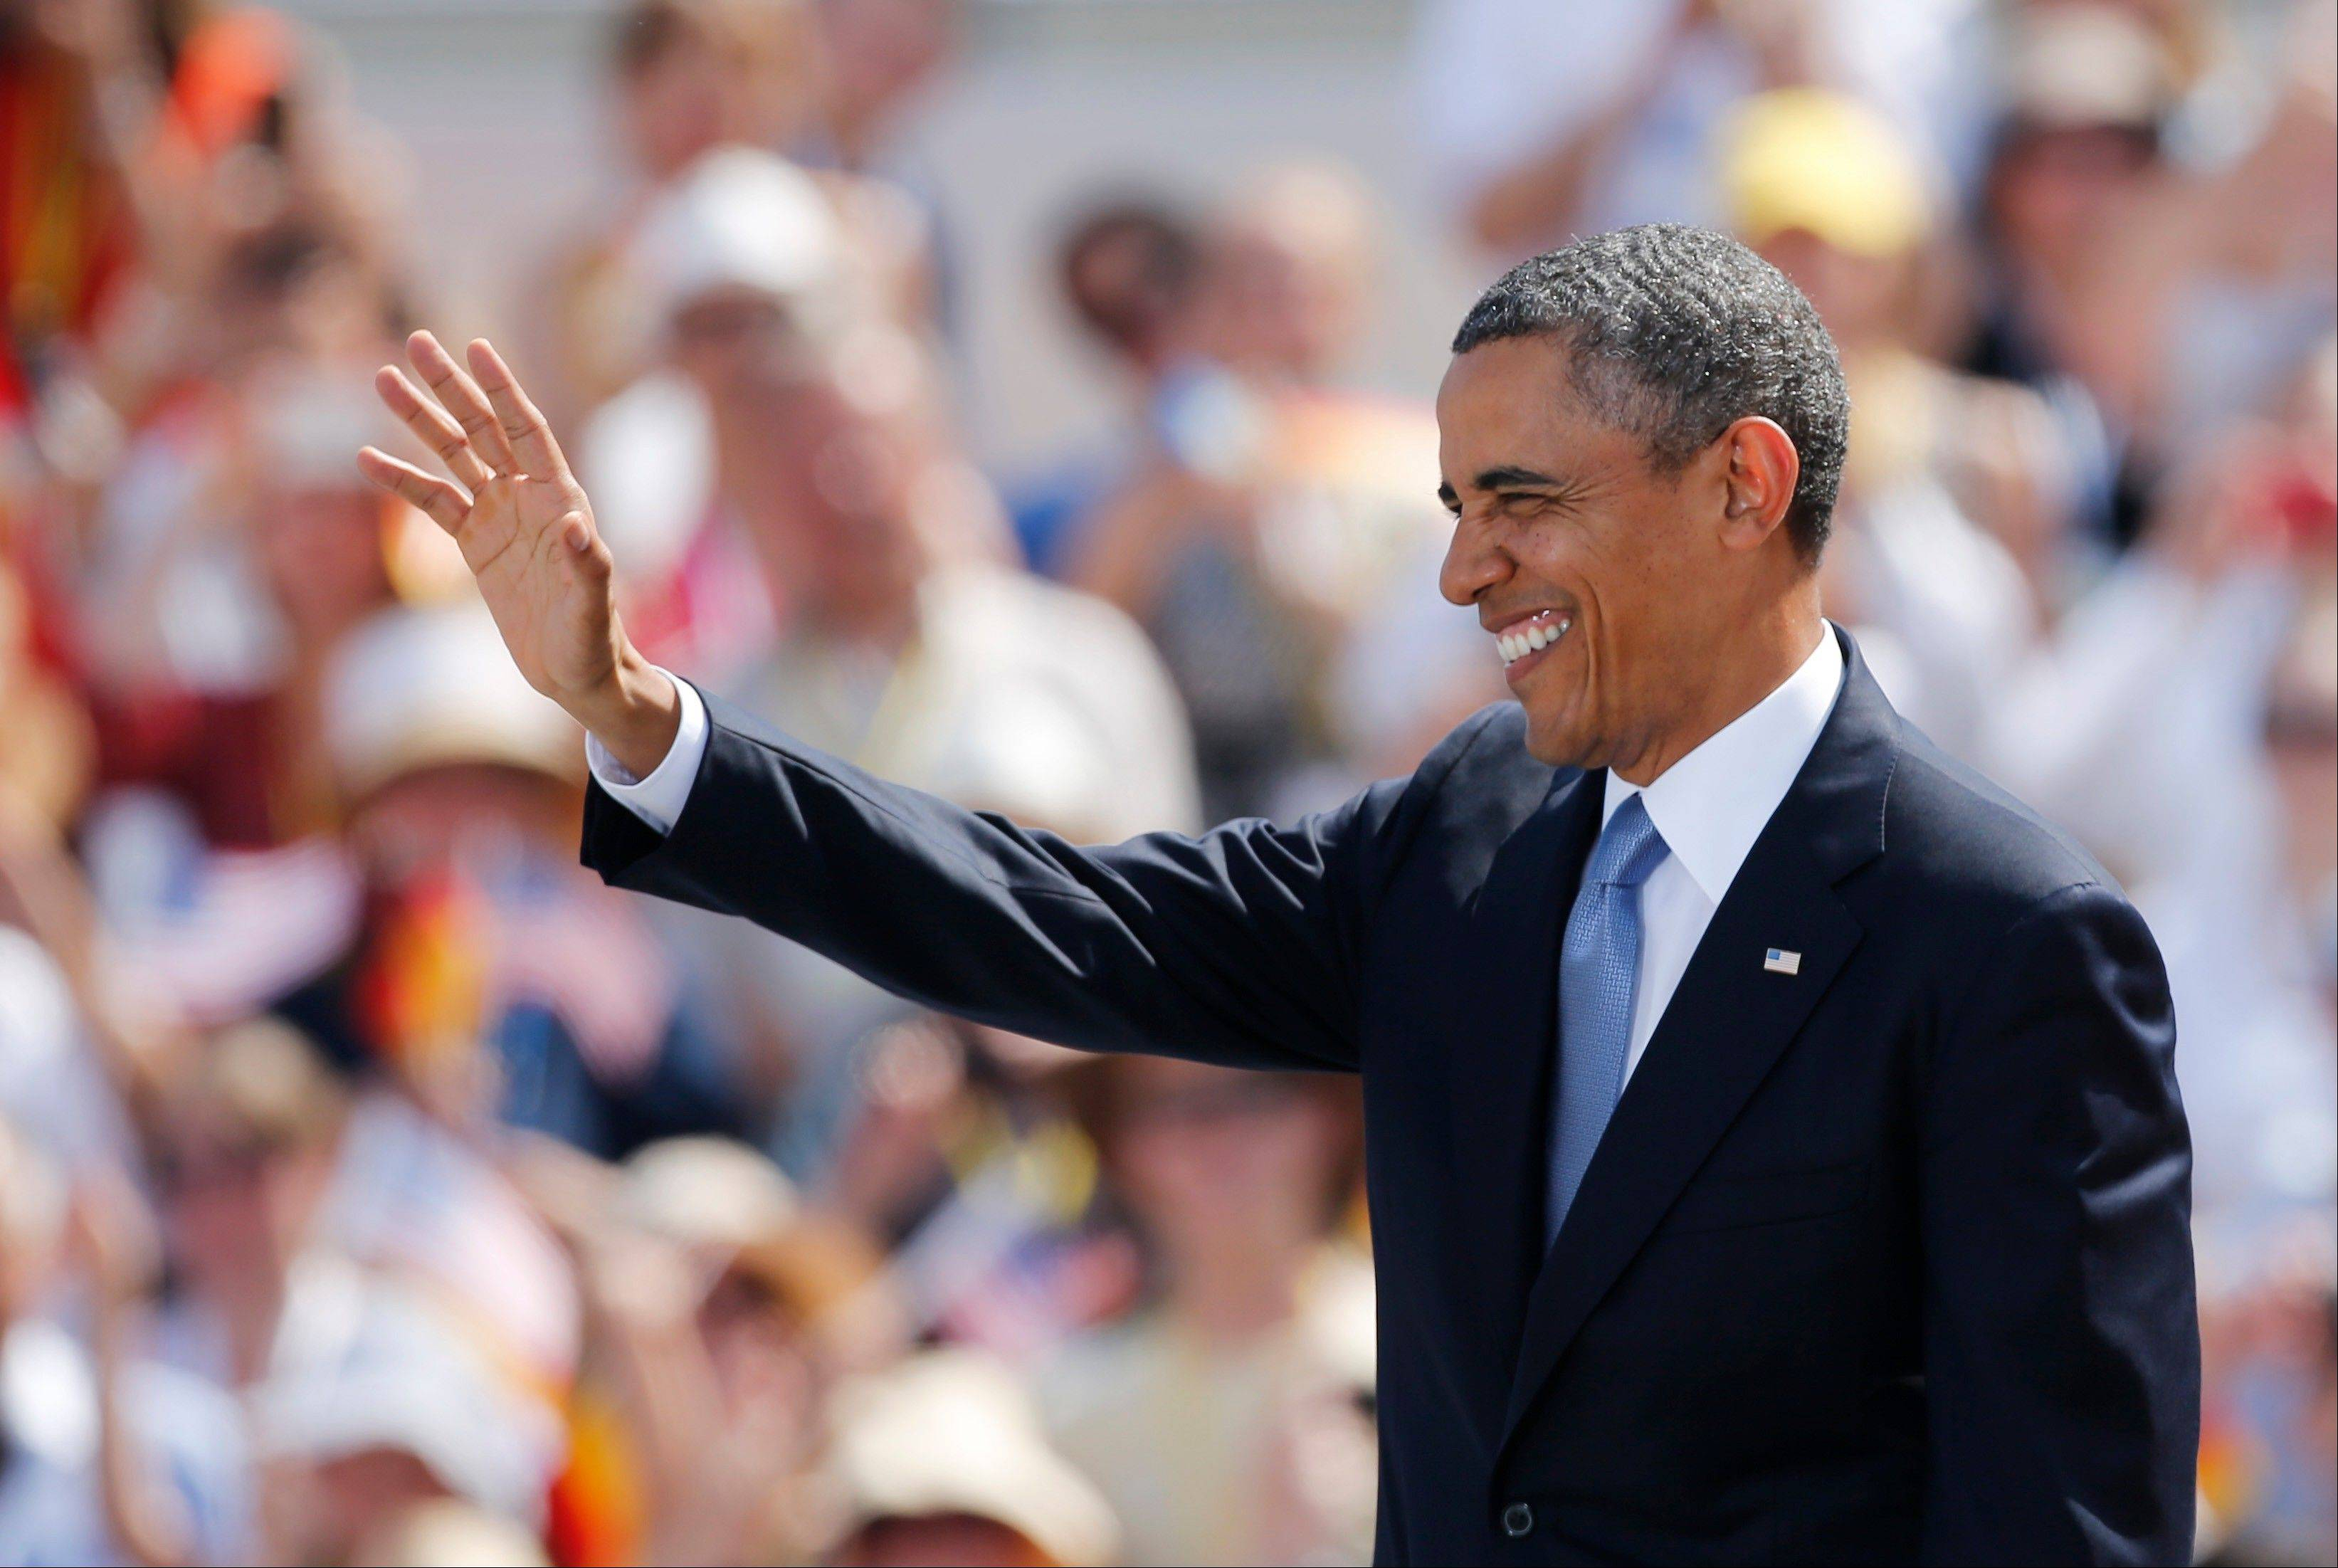 President Barack Obama waves as h